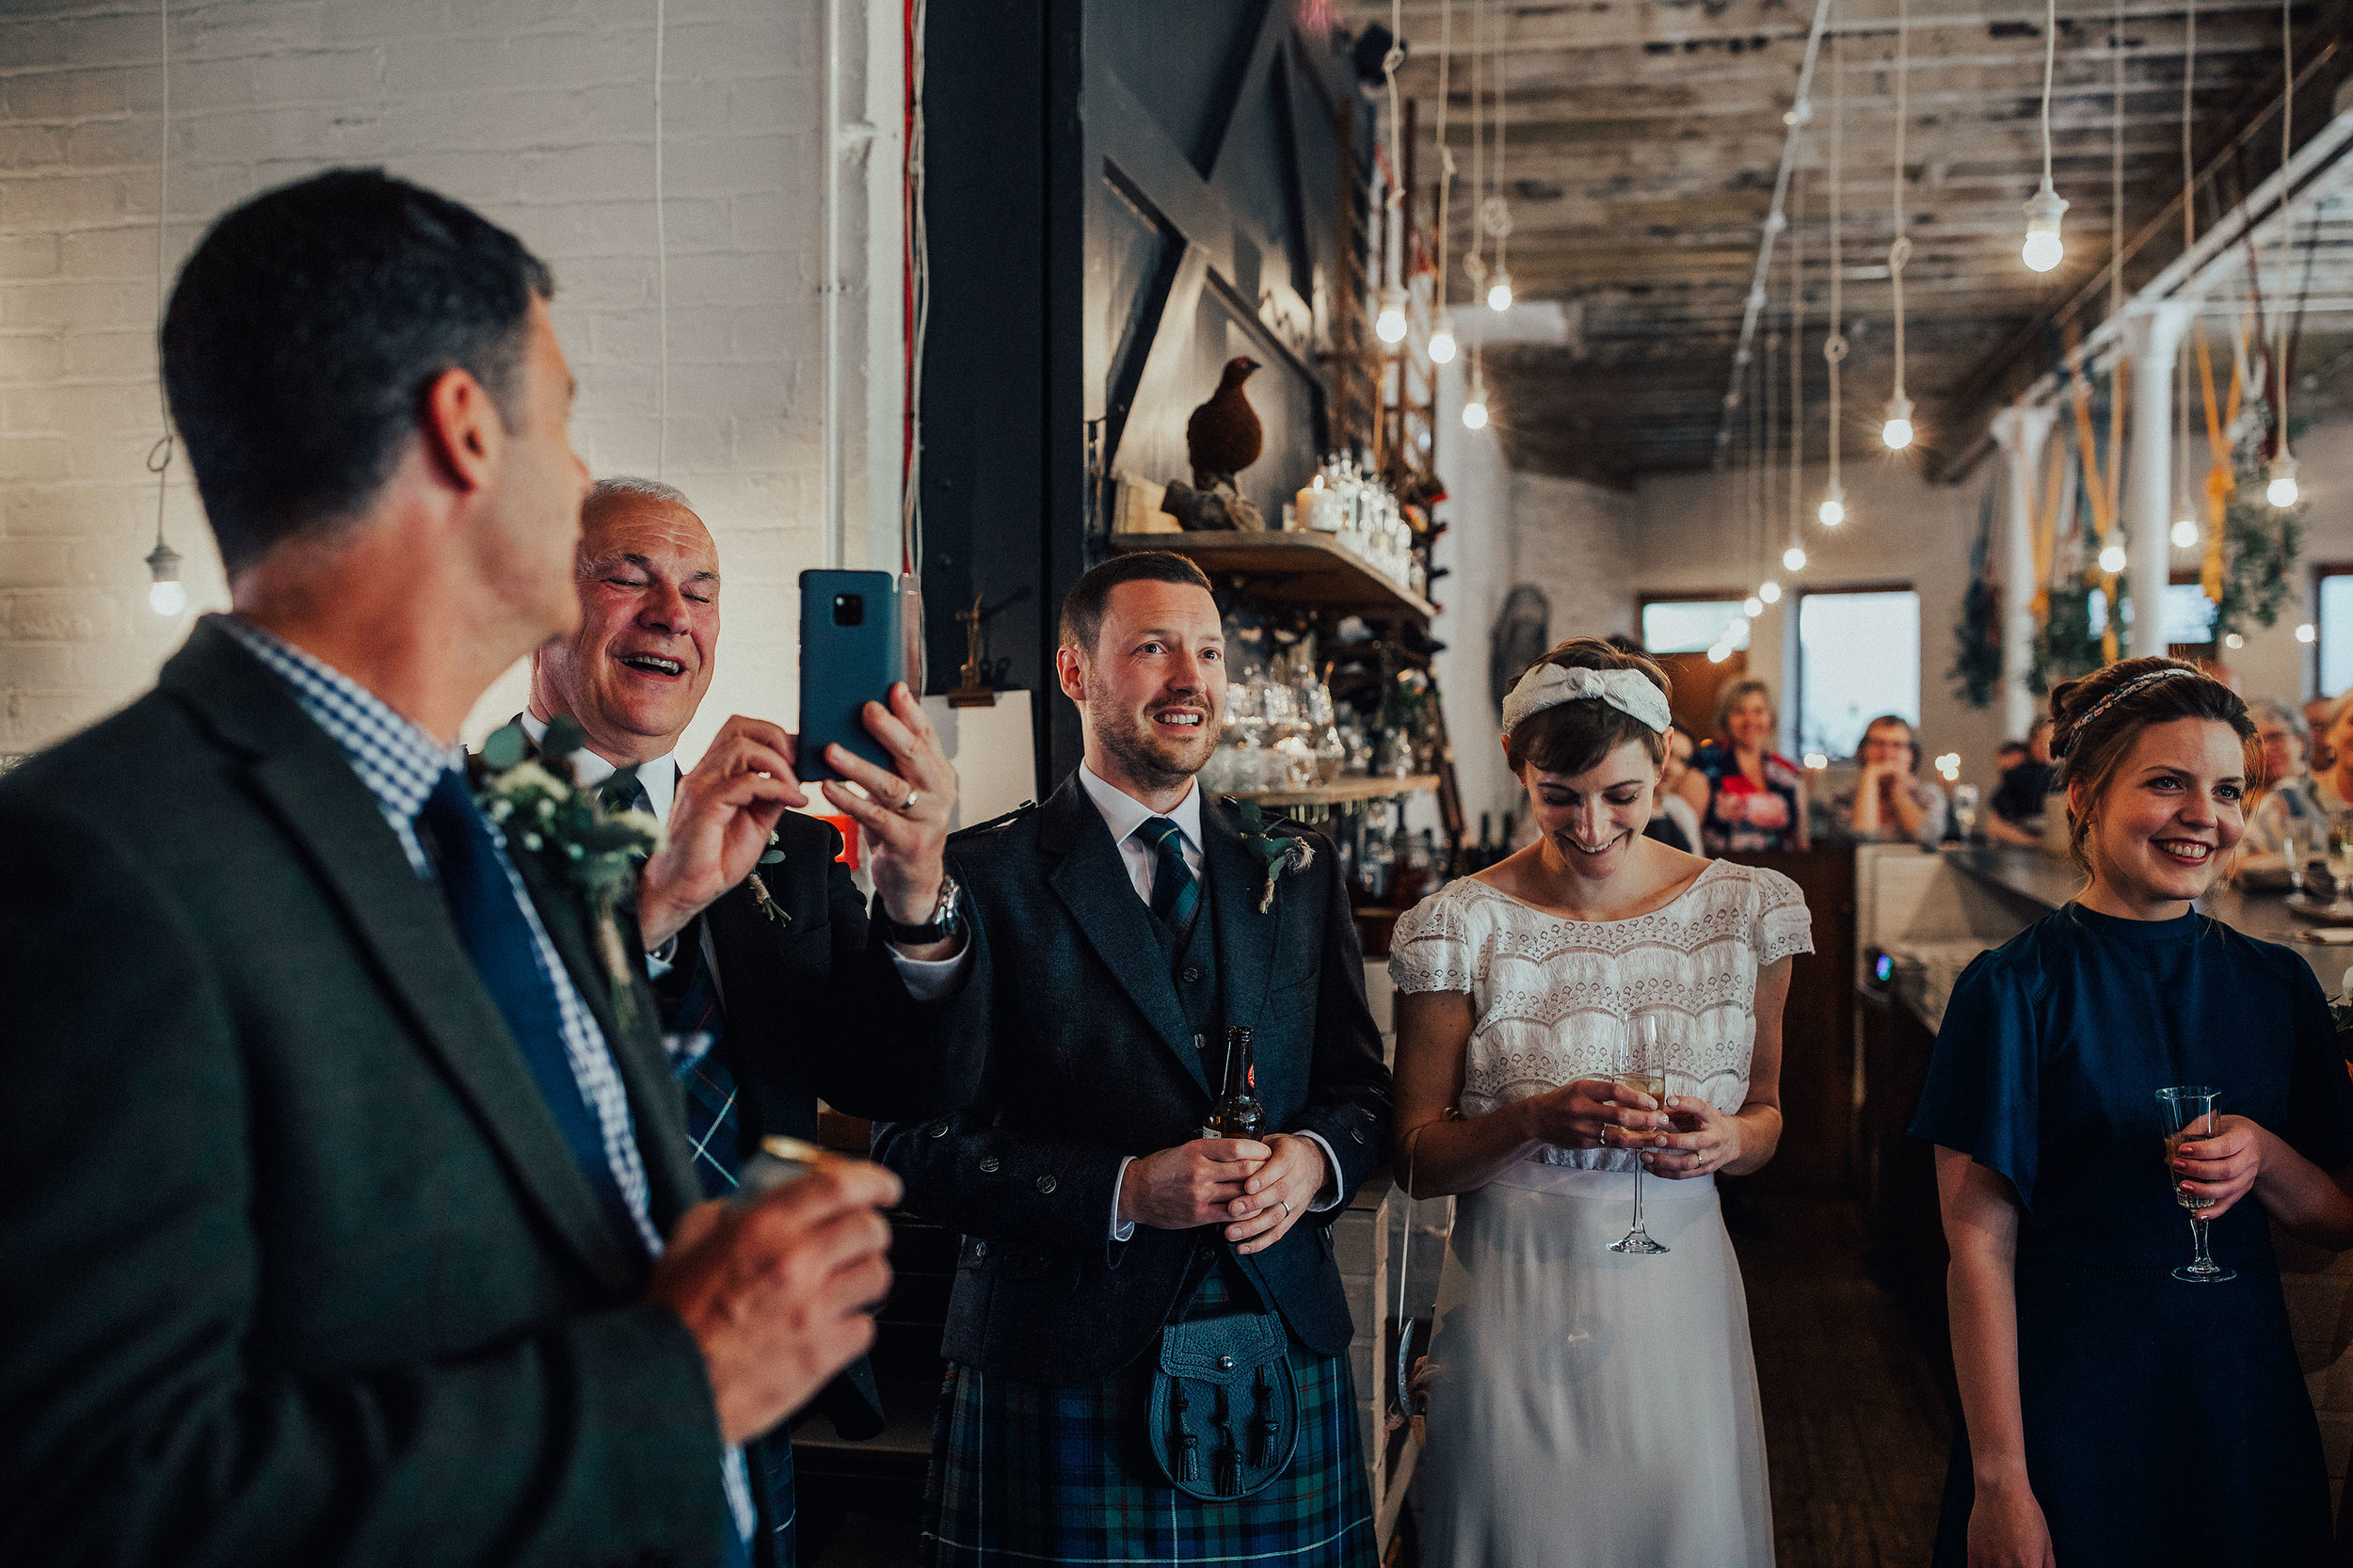 TIMBERYARD_EDINBURGH_WEDDING_PJ_PHILLIPS_PHOTOGRAPHY_159.jpg